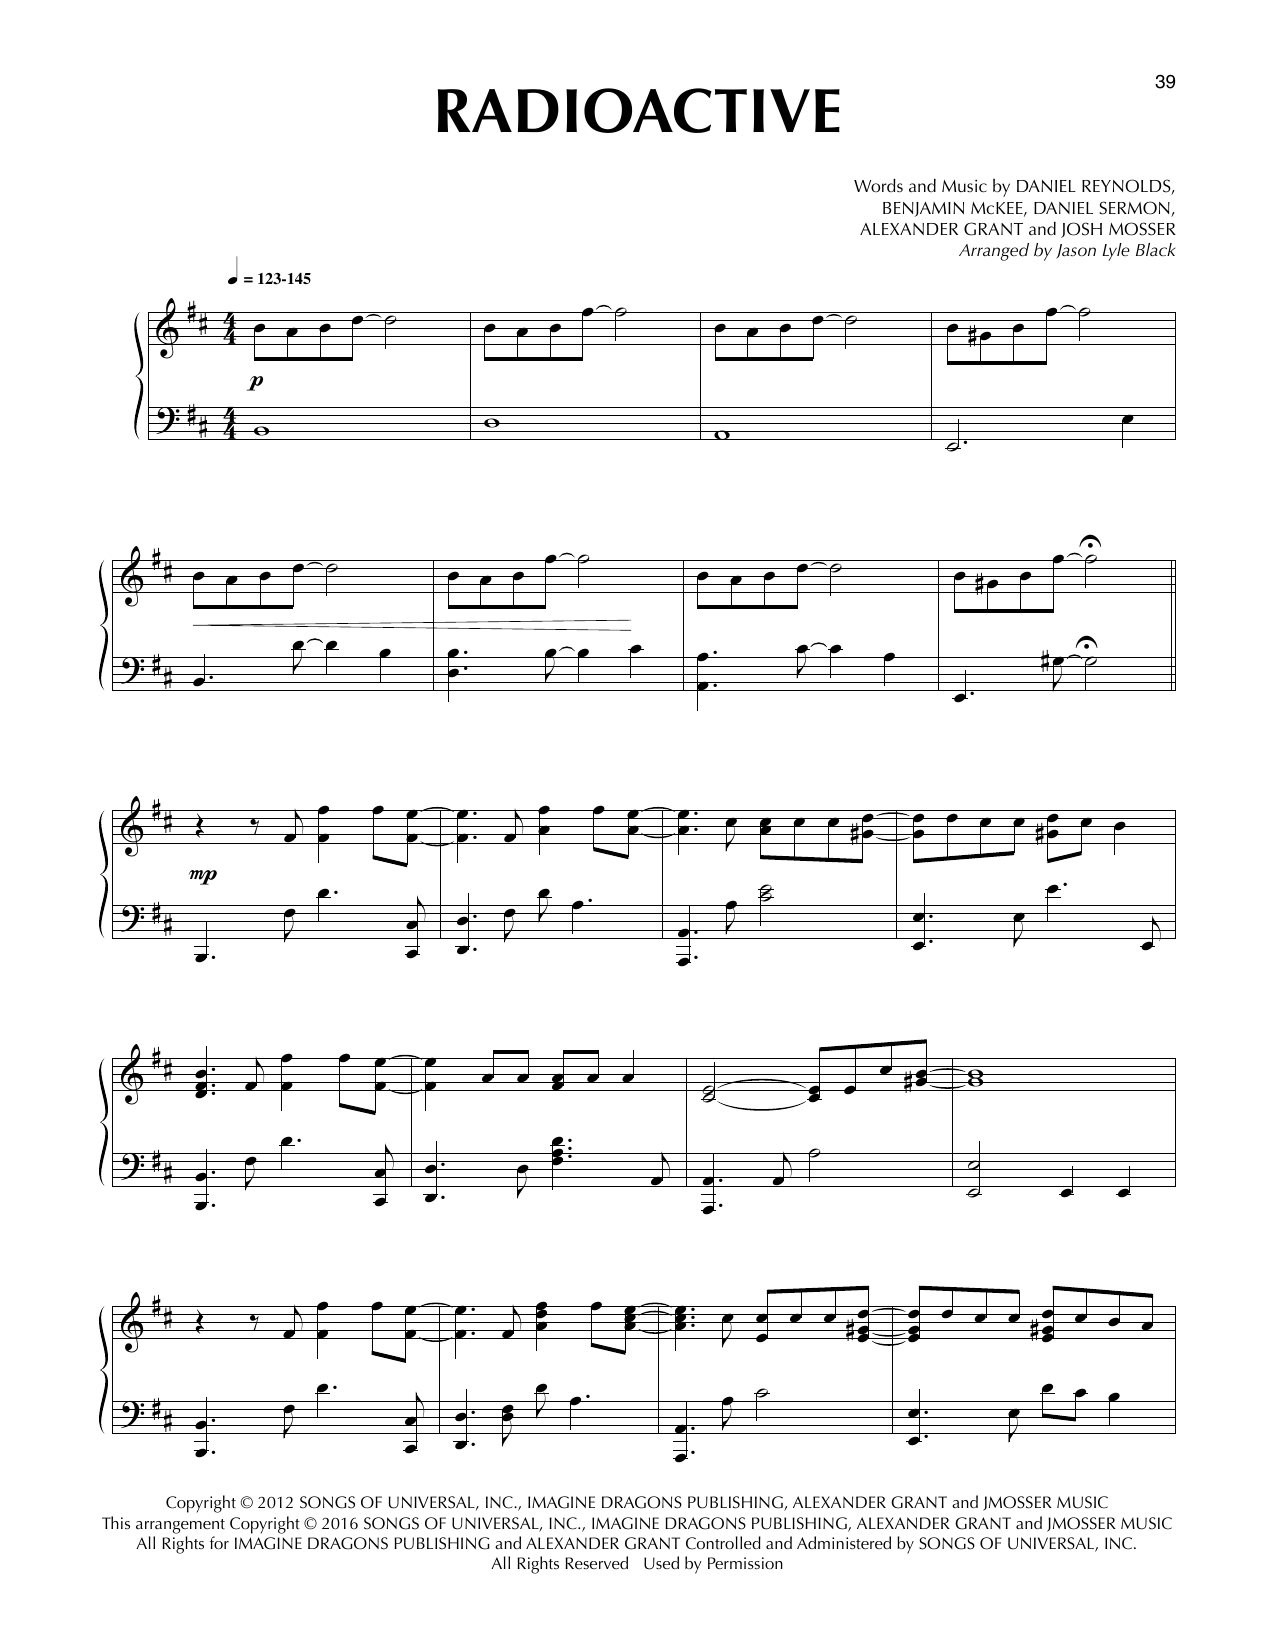 Download Jason Lyle Black 'Radioactive' Digital Sheet Music Notes & Chords and start playing in minutes